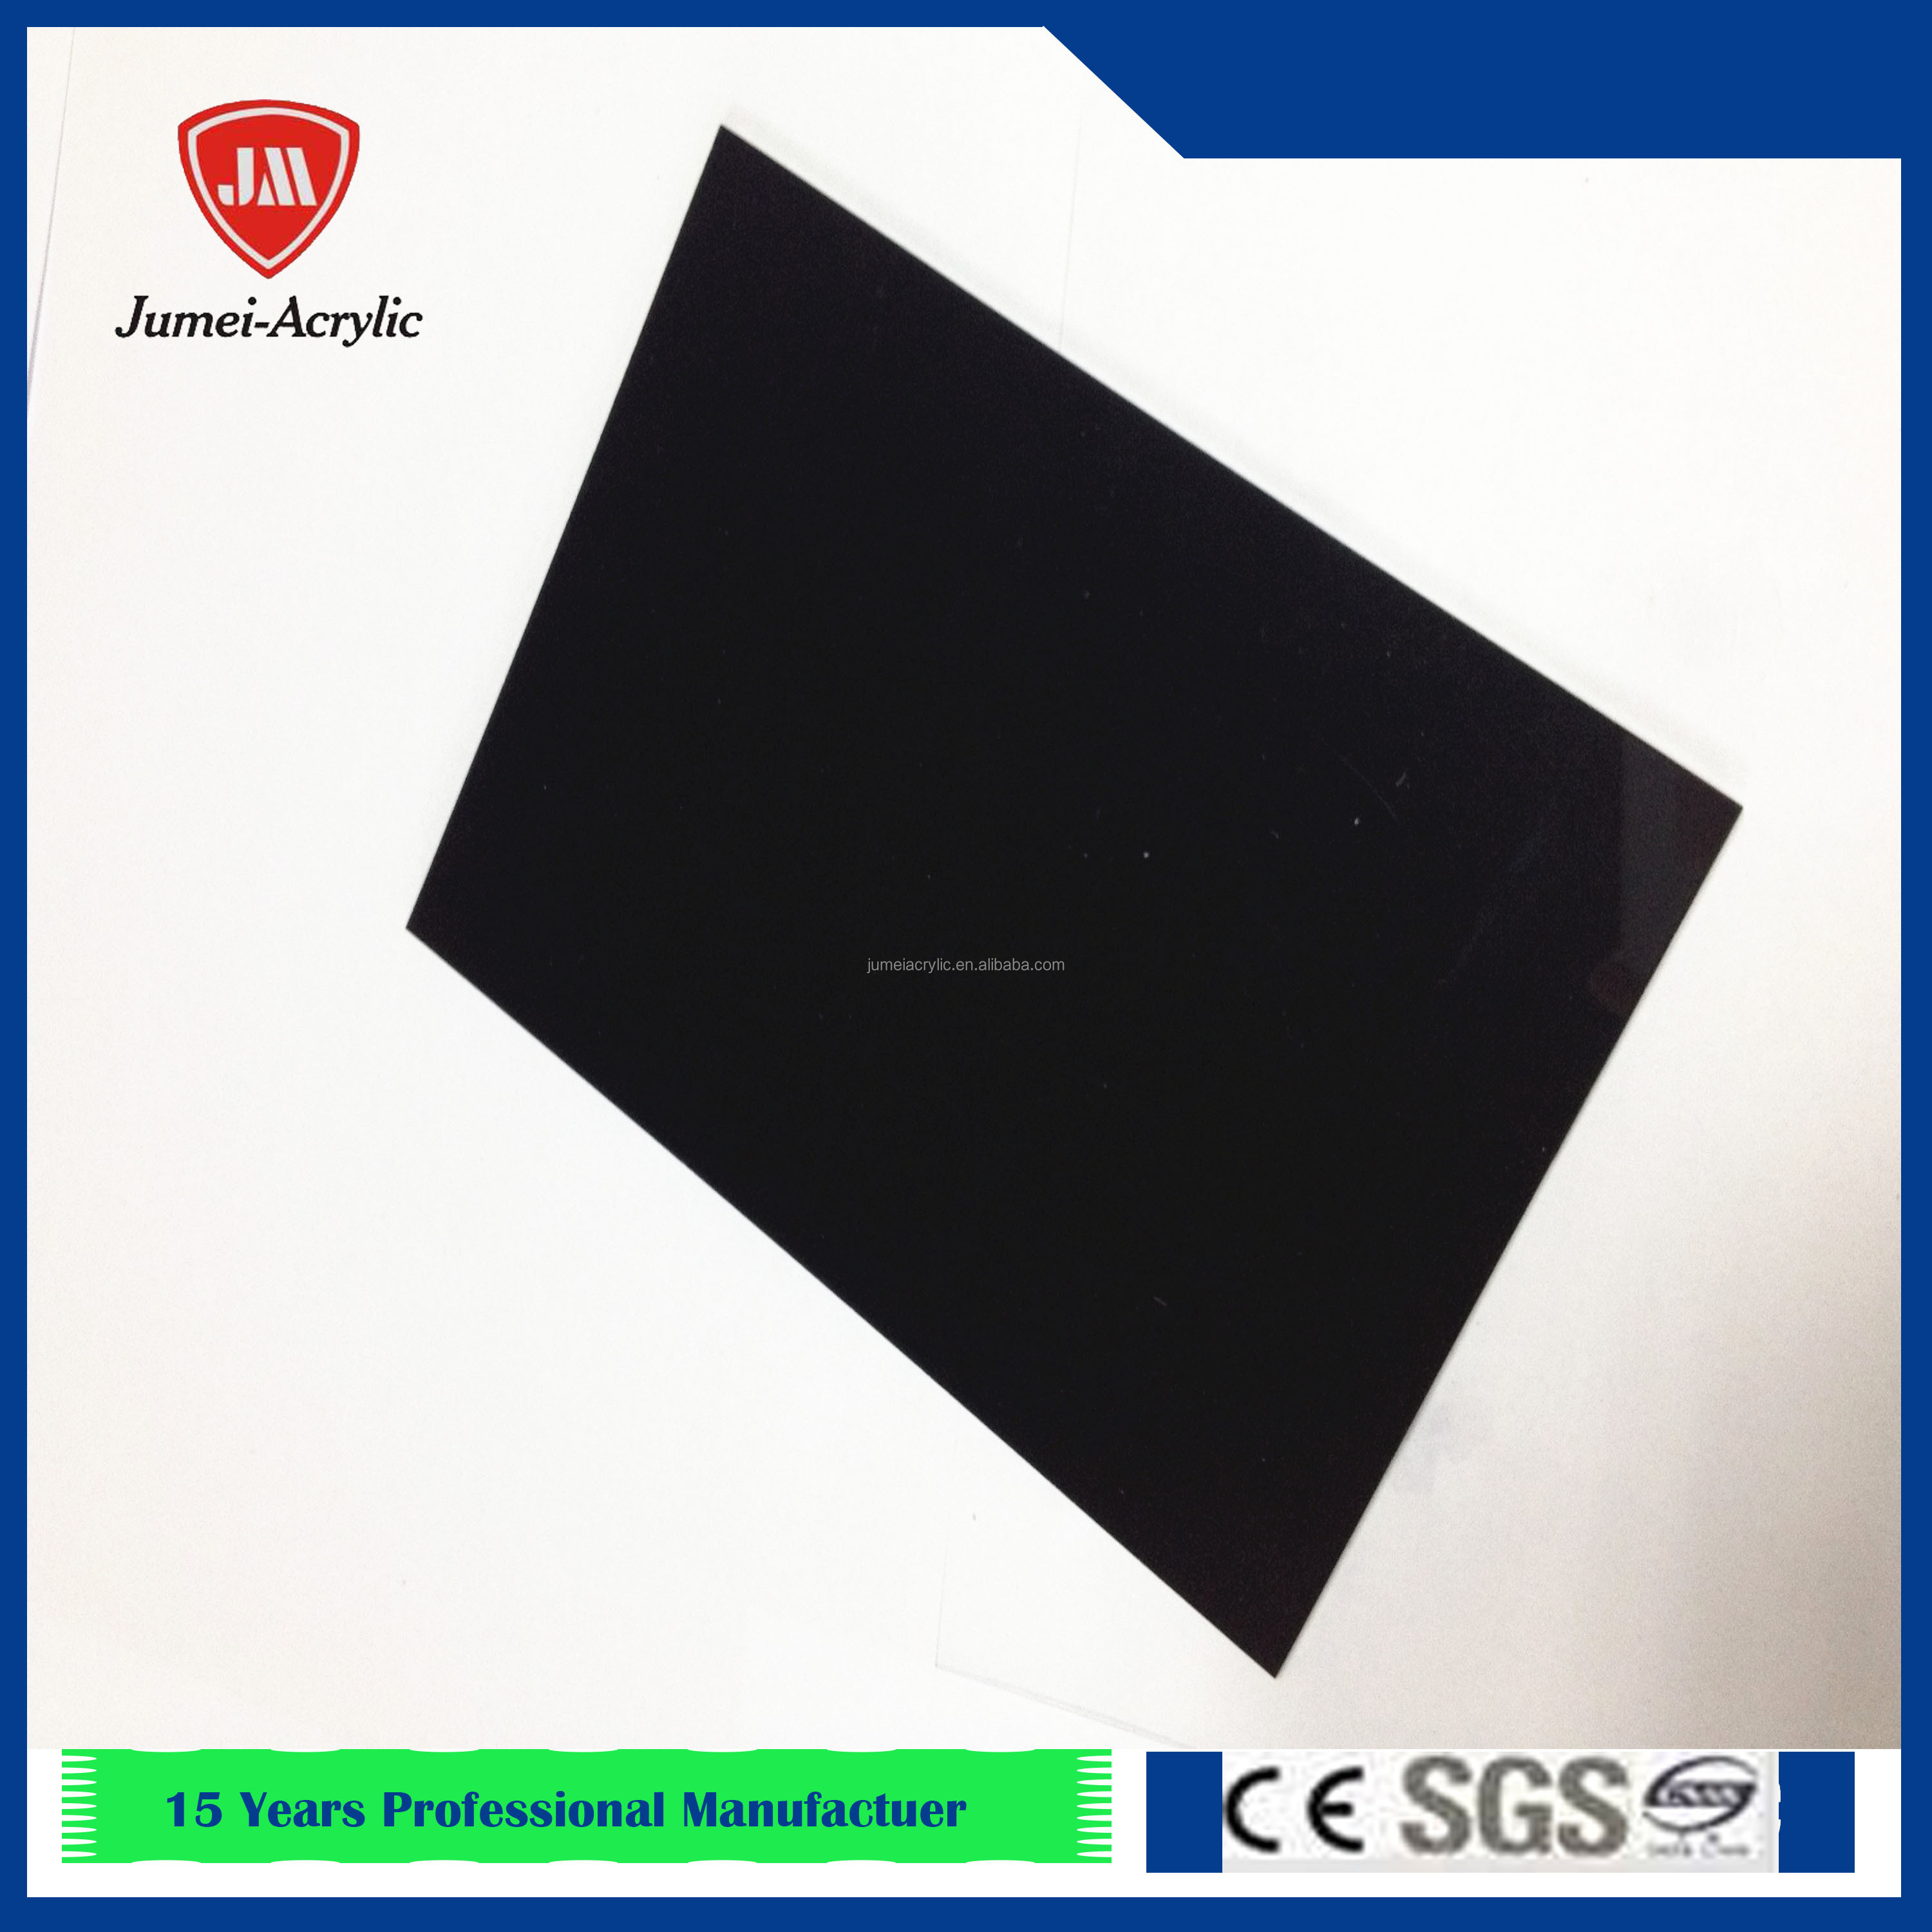 JM ISO9001 manufacture OEM ODM acrylic plate acrylic board clear plastic sheets for North American maket